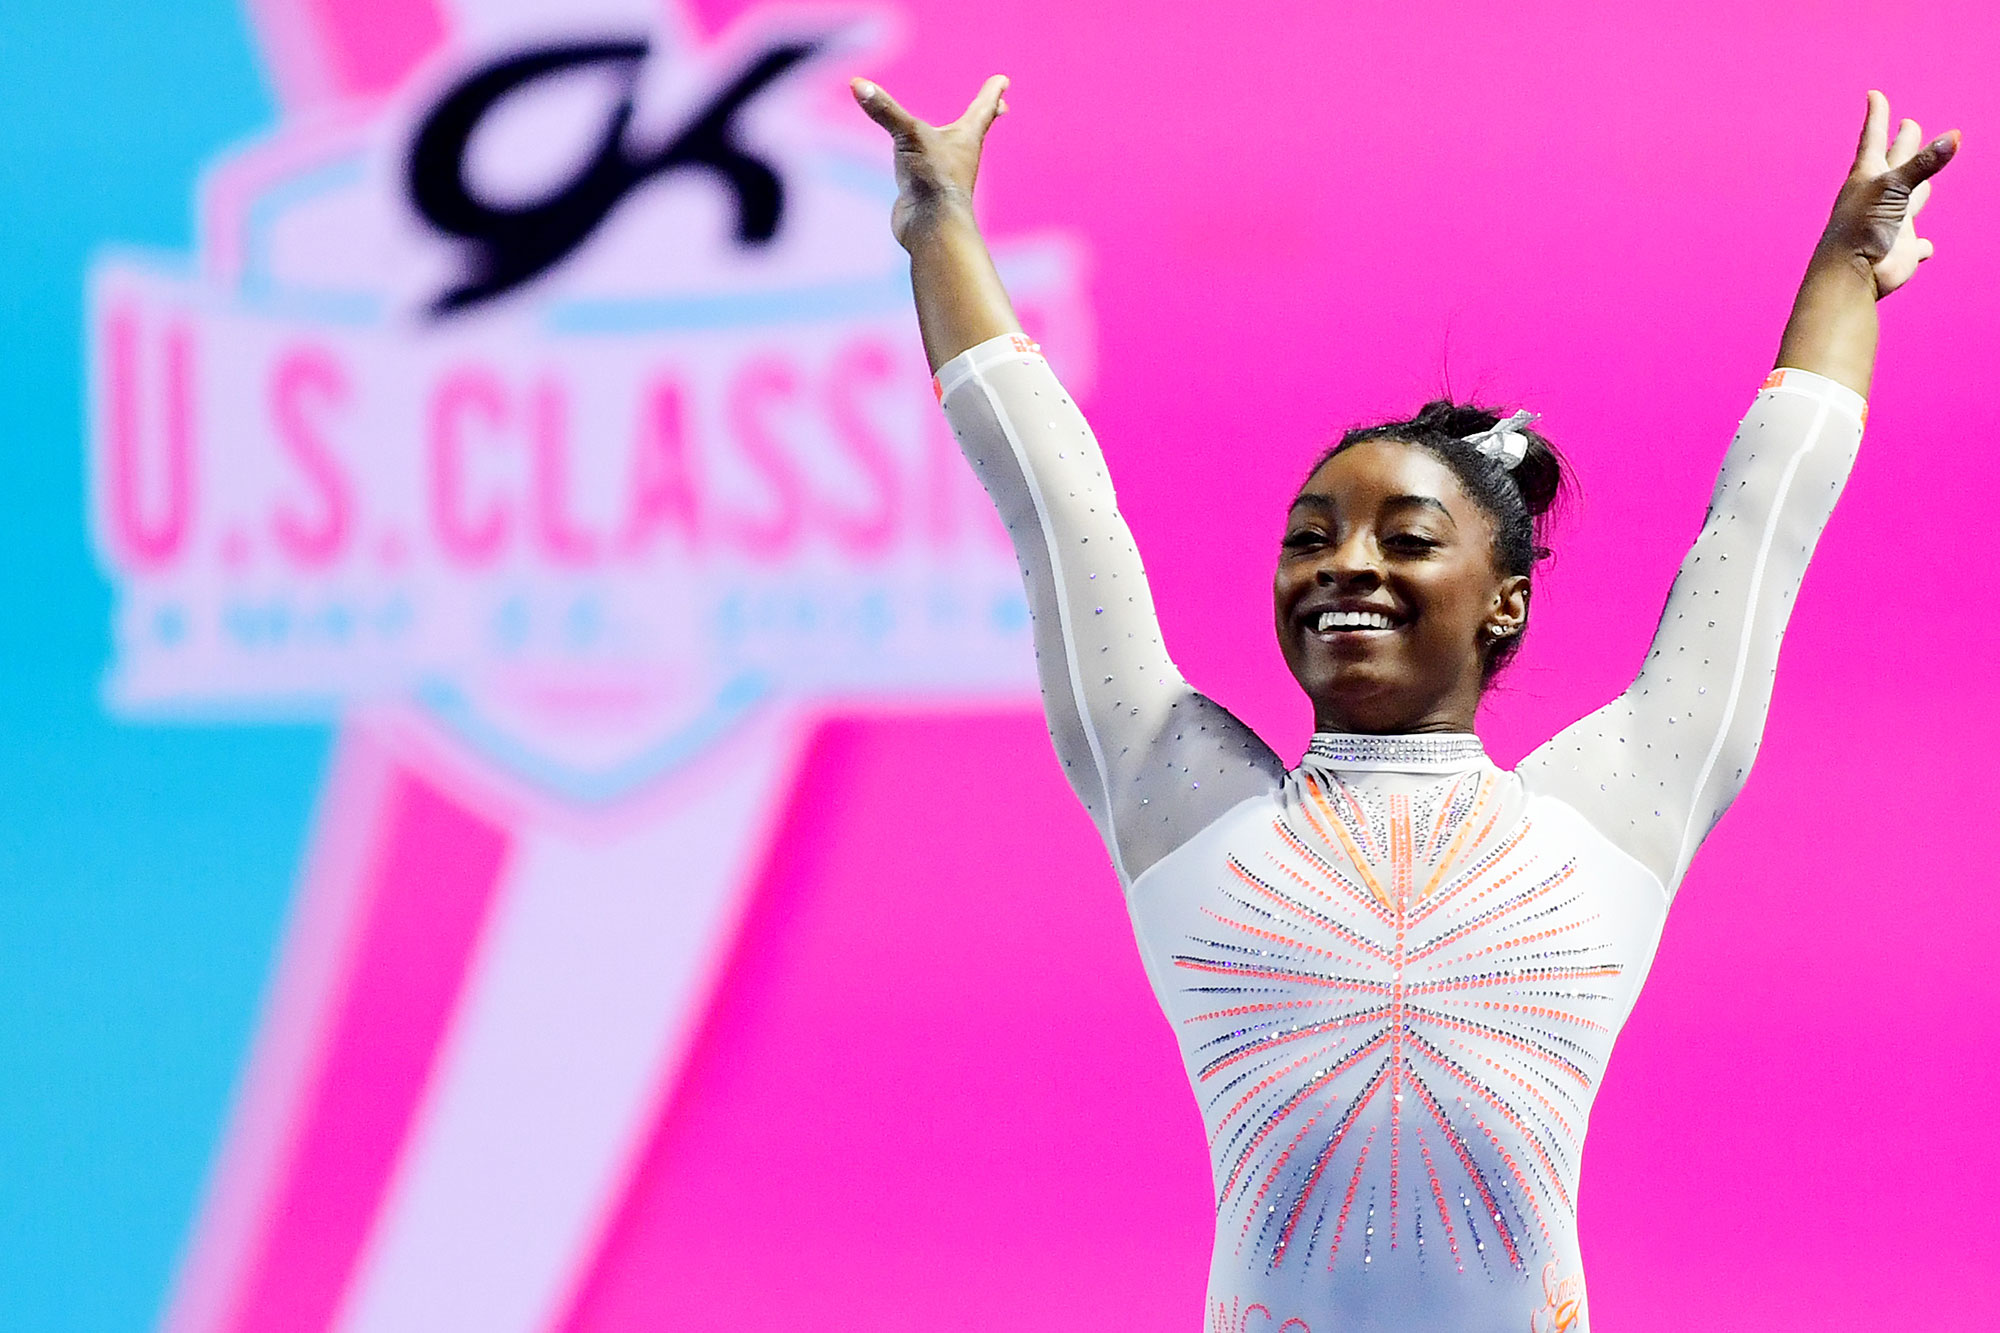 Simone Biles smiles after competing her floor routine during the 2021 GK U.S. Classic gymnastics competition at the Indiana Convention Center on May 22, 2021 in Indianapolis, Indiana